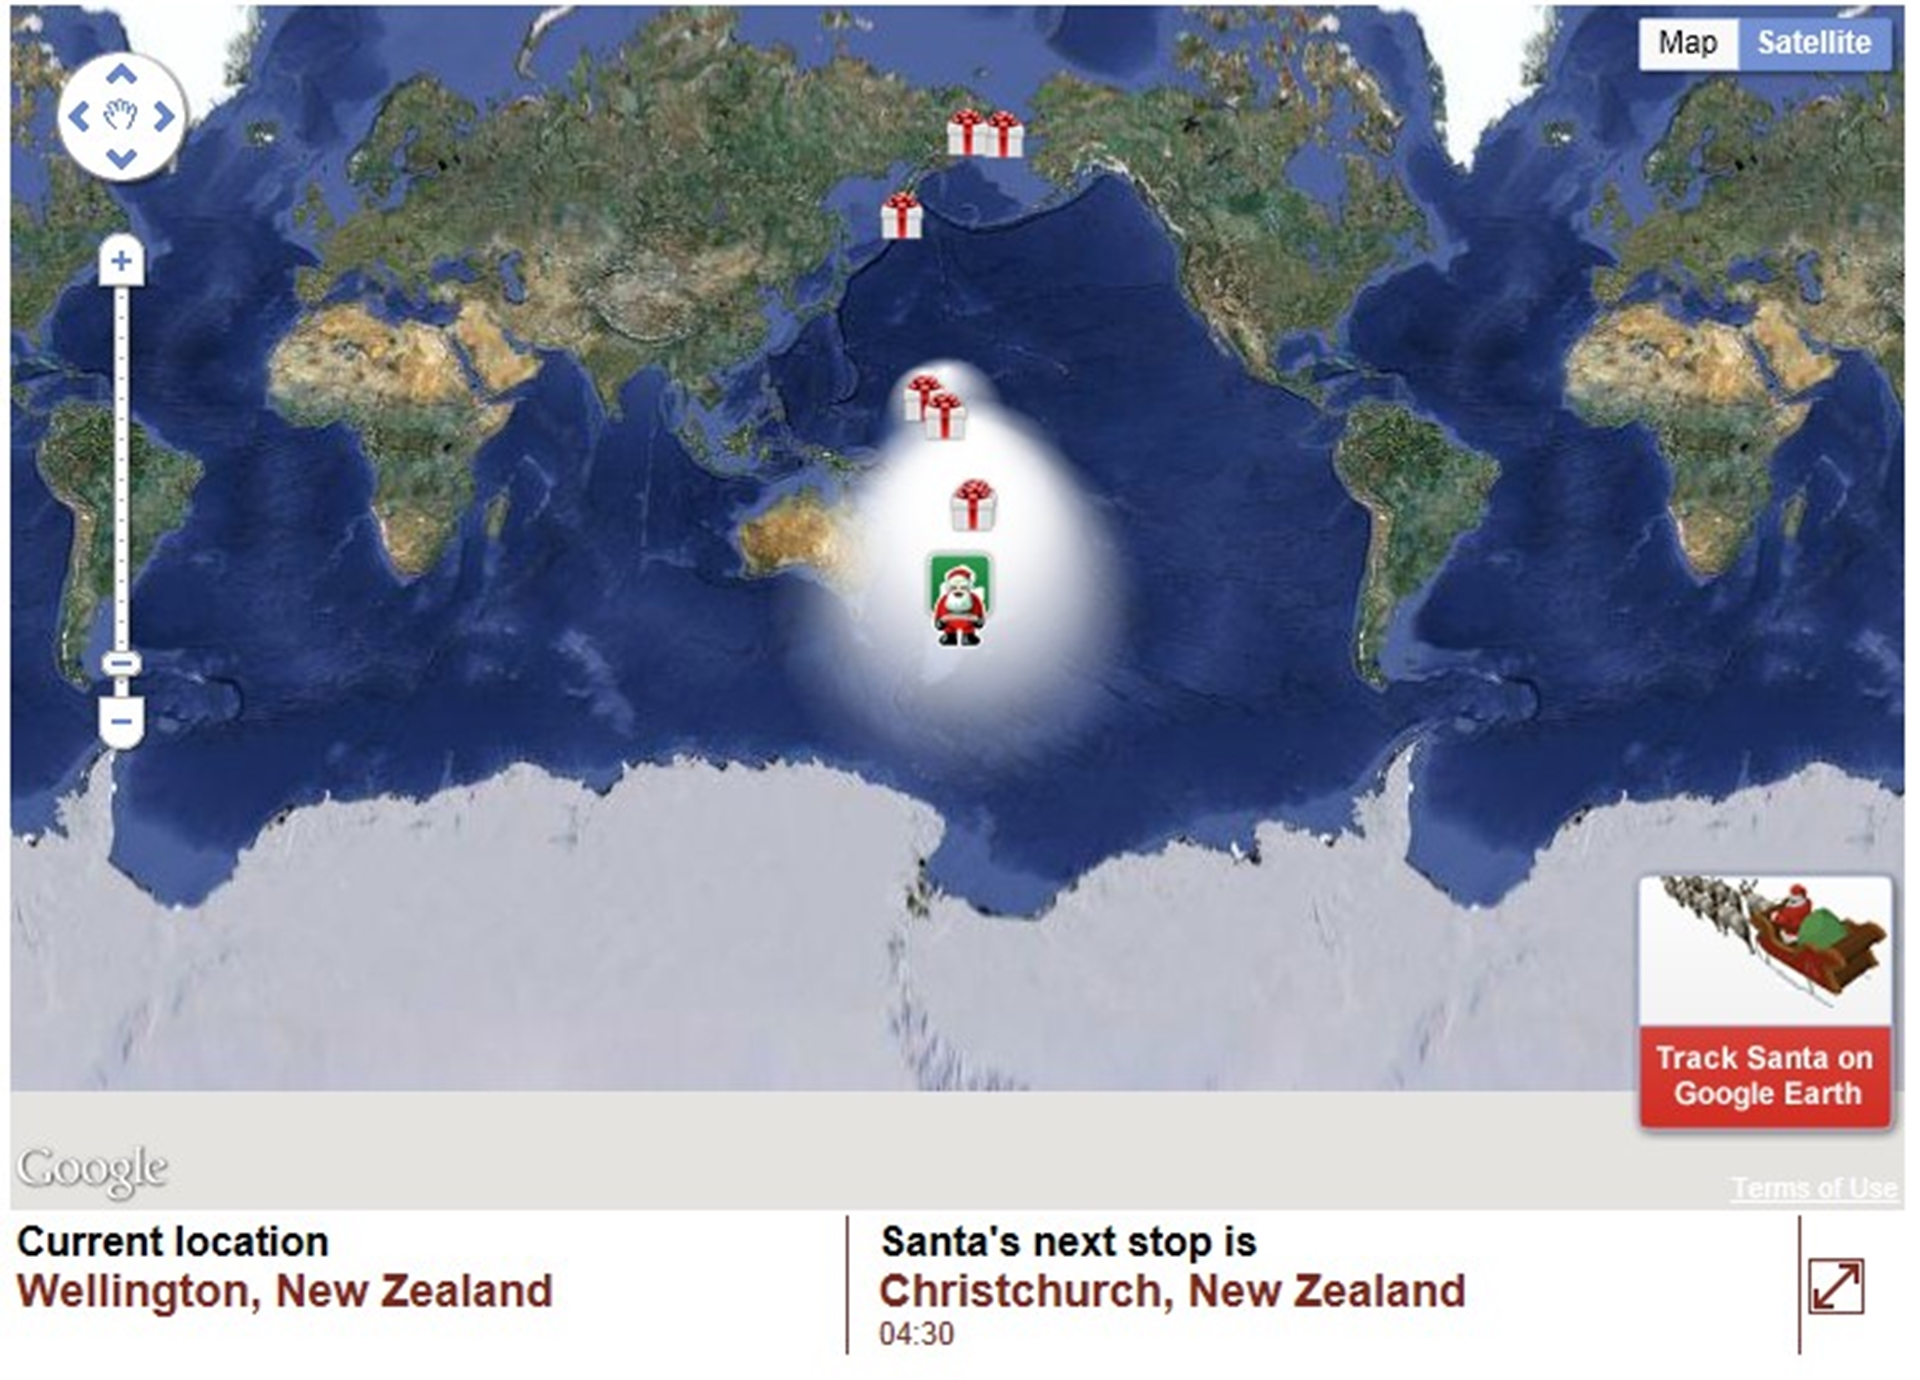 Follow Santa Clause Now in New Zealand